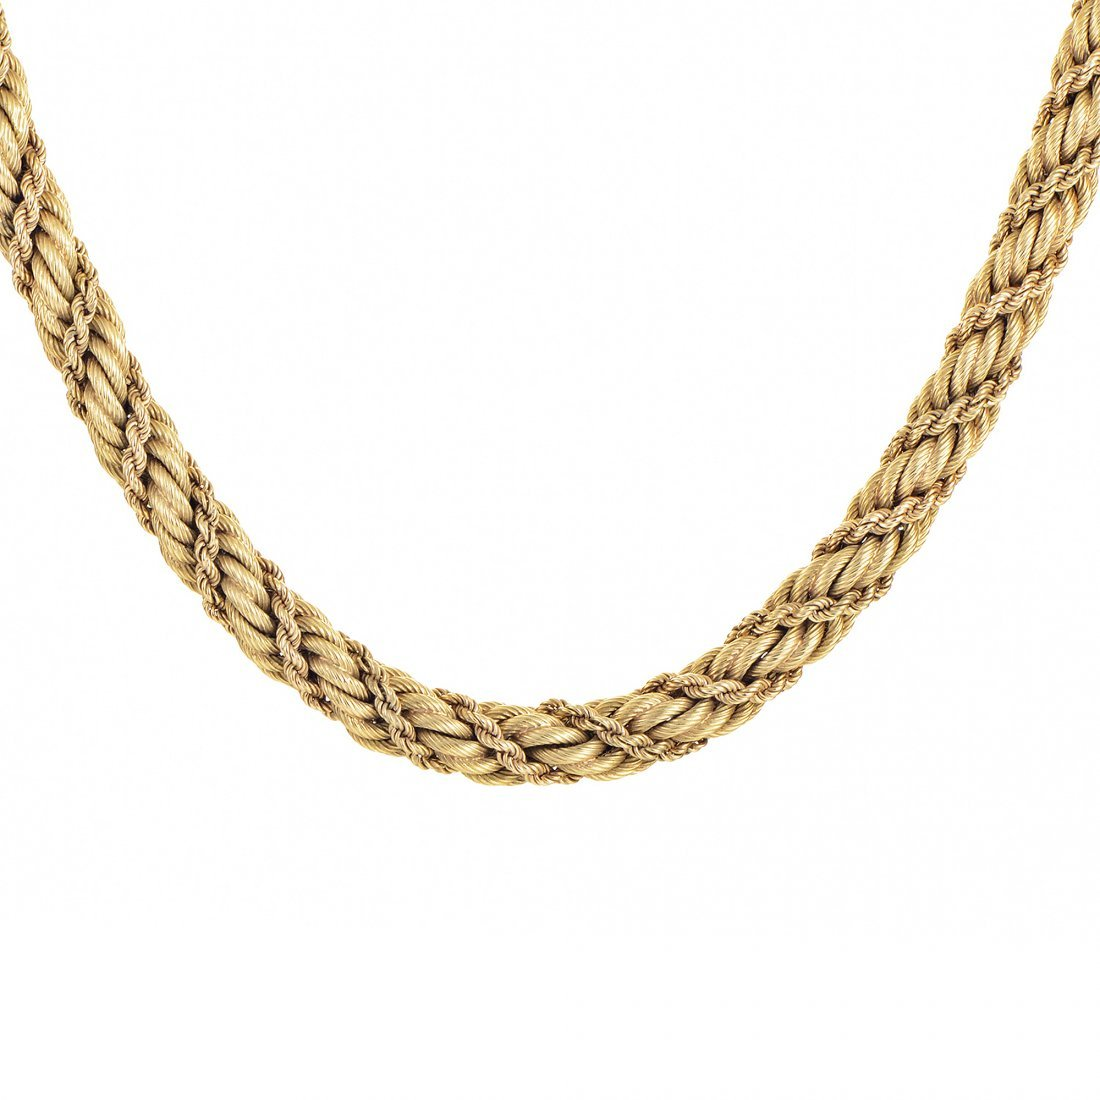 Tiffany & Co. 18K Yellow Gold Rope Collar Necklace